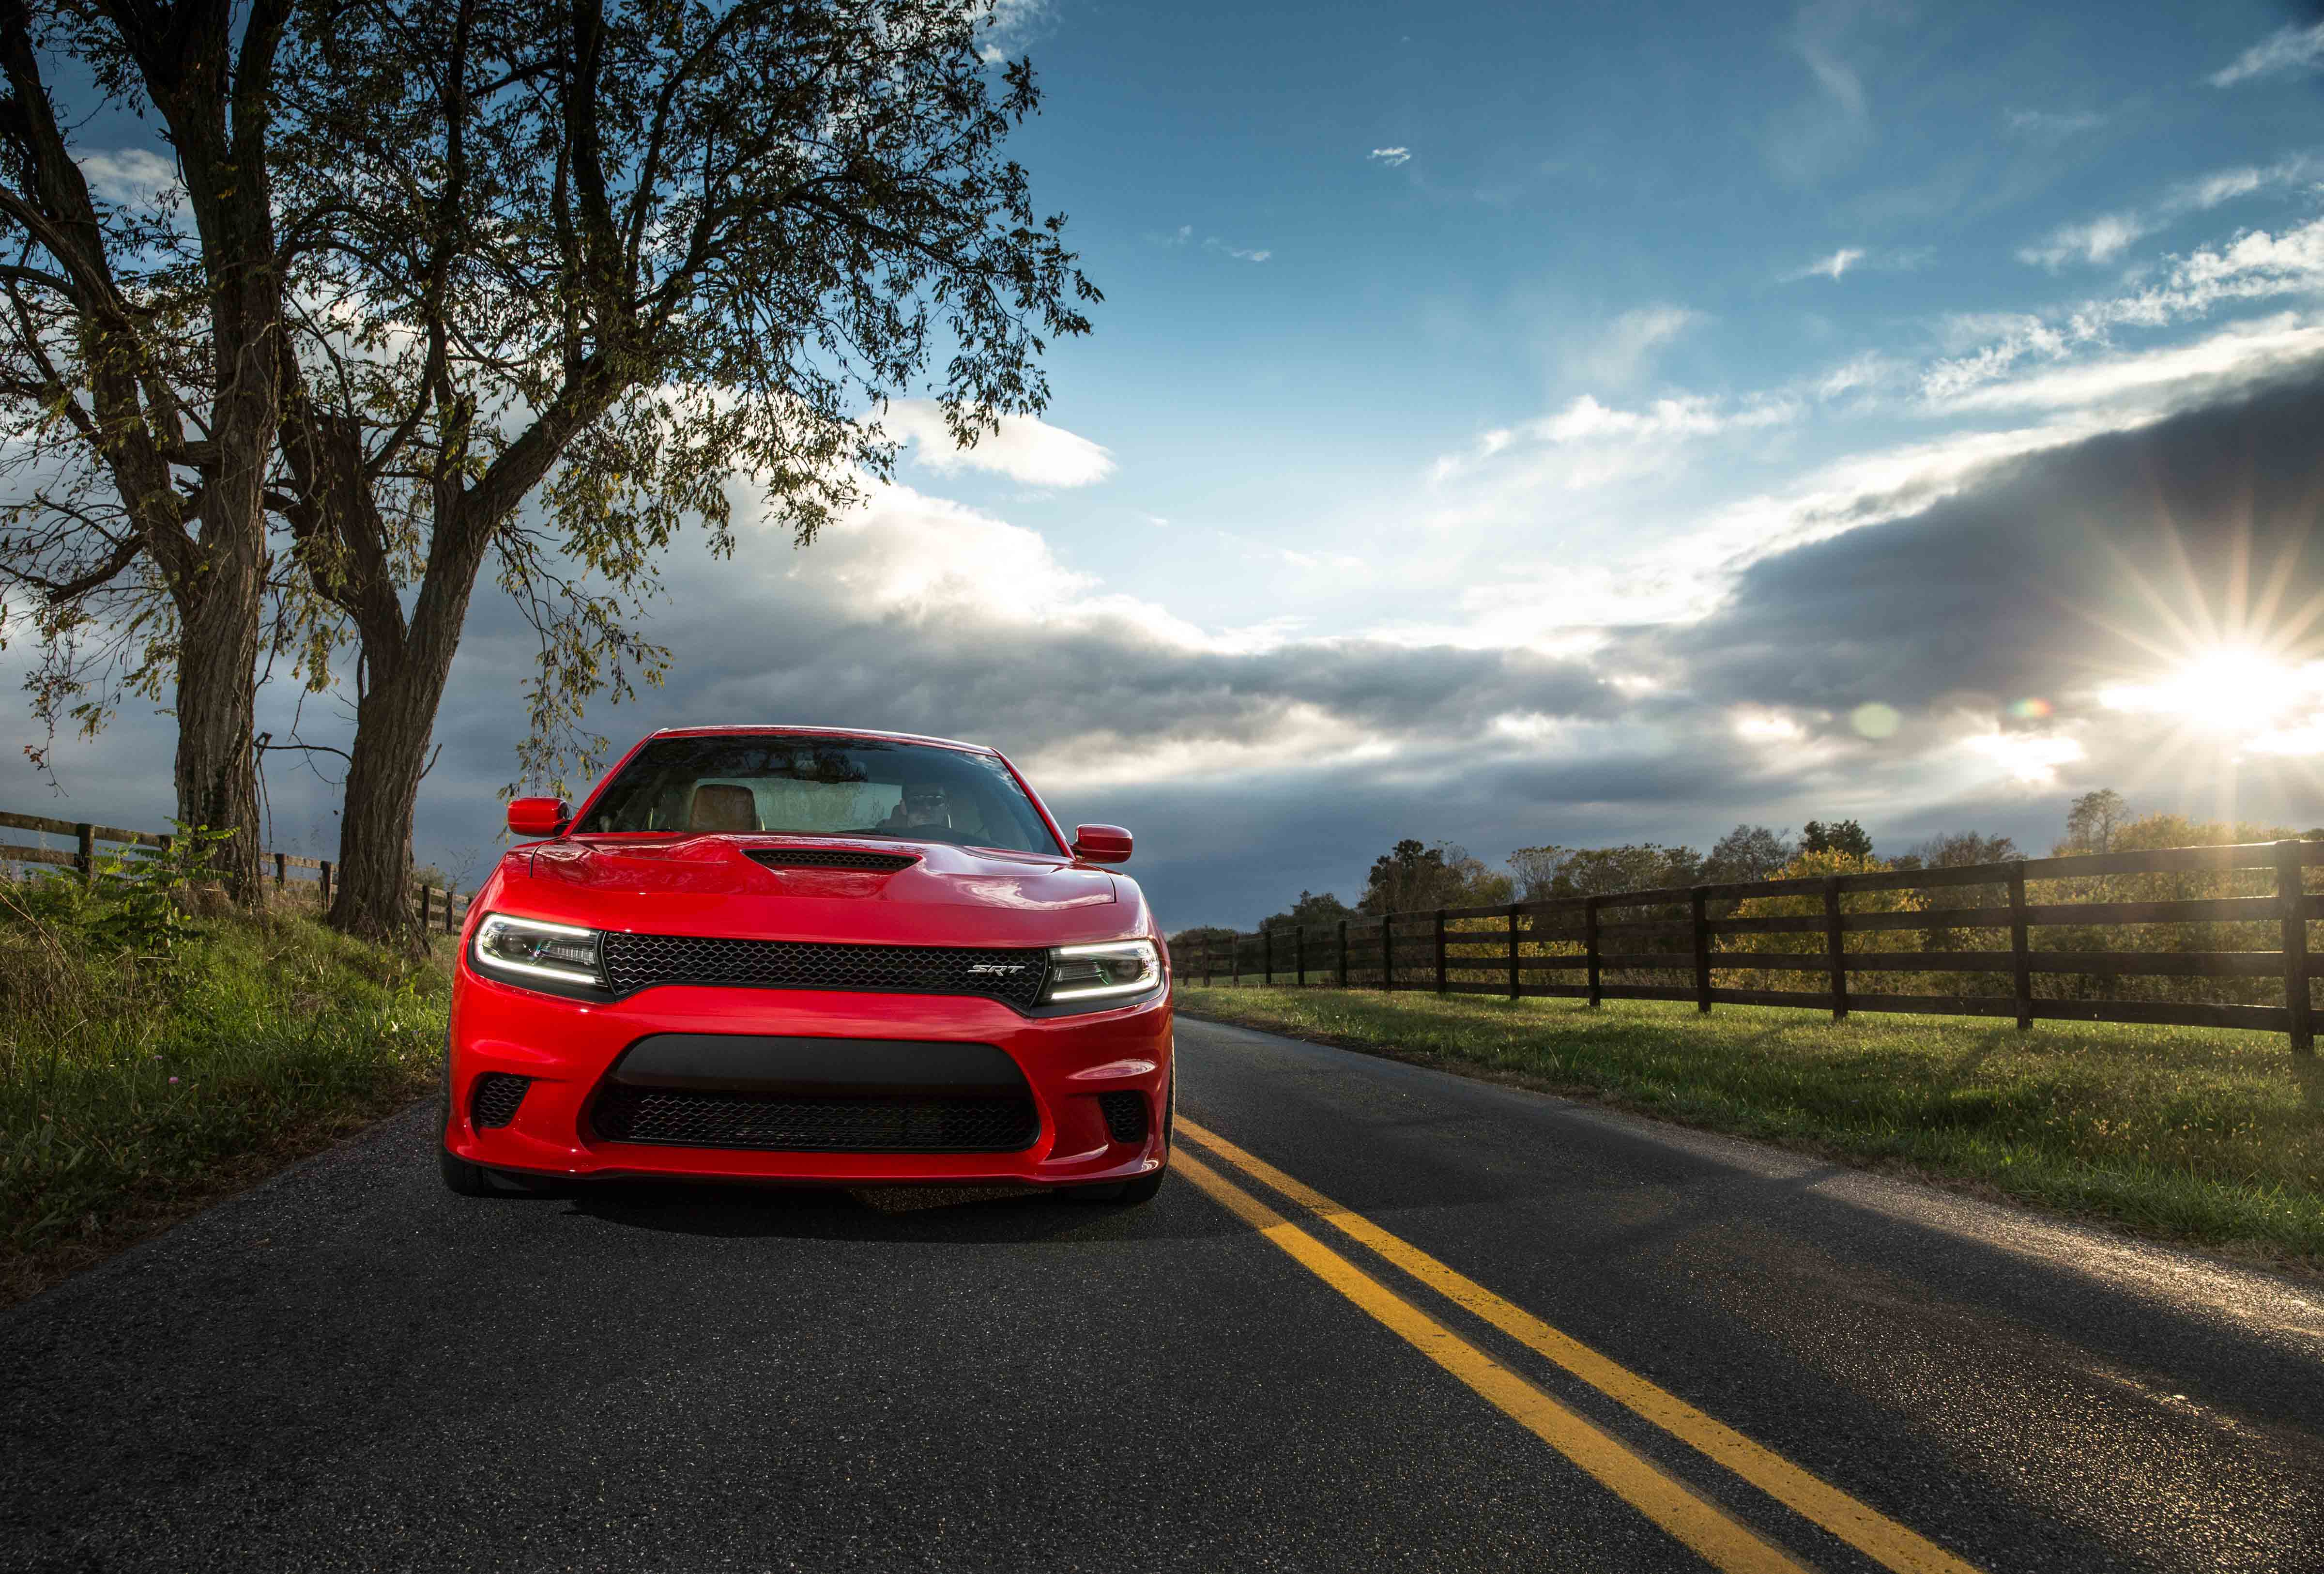 New Dodge available in Stillwater, MN at Fury Motors Stillwater